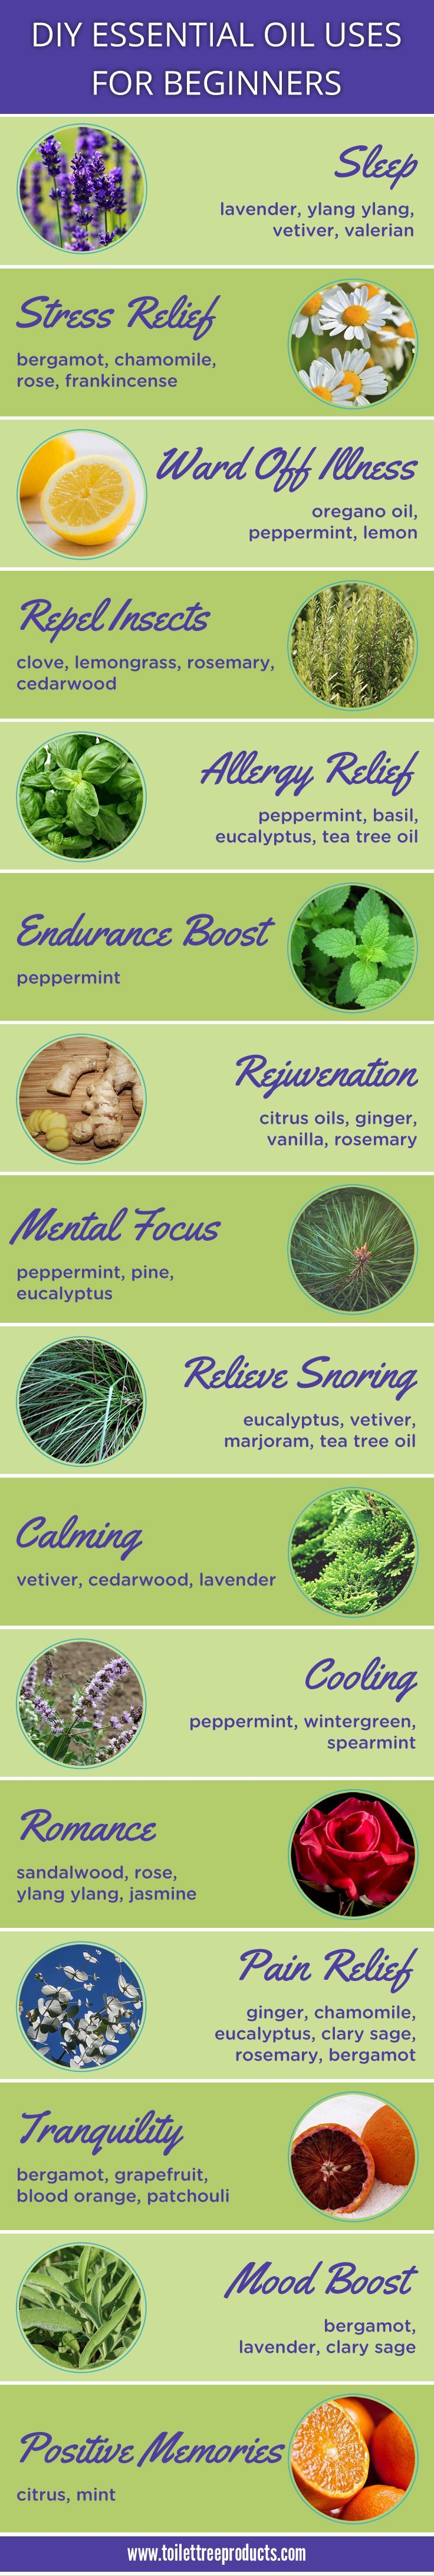 18 Causes - Why Each House Wants An Important Oil Diffuser. >>> See even more at the photo link